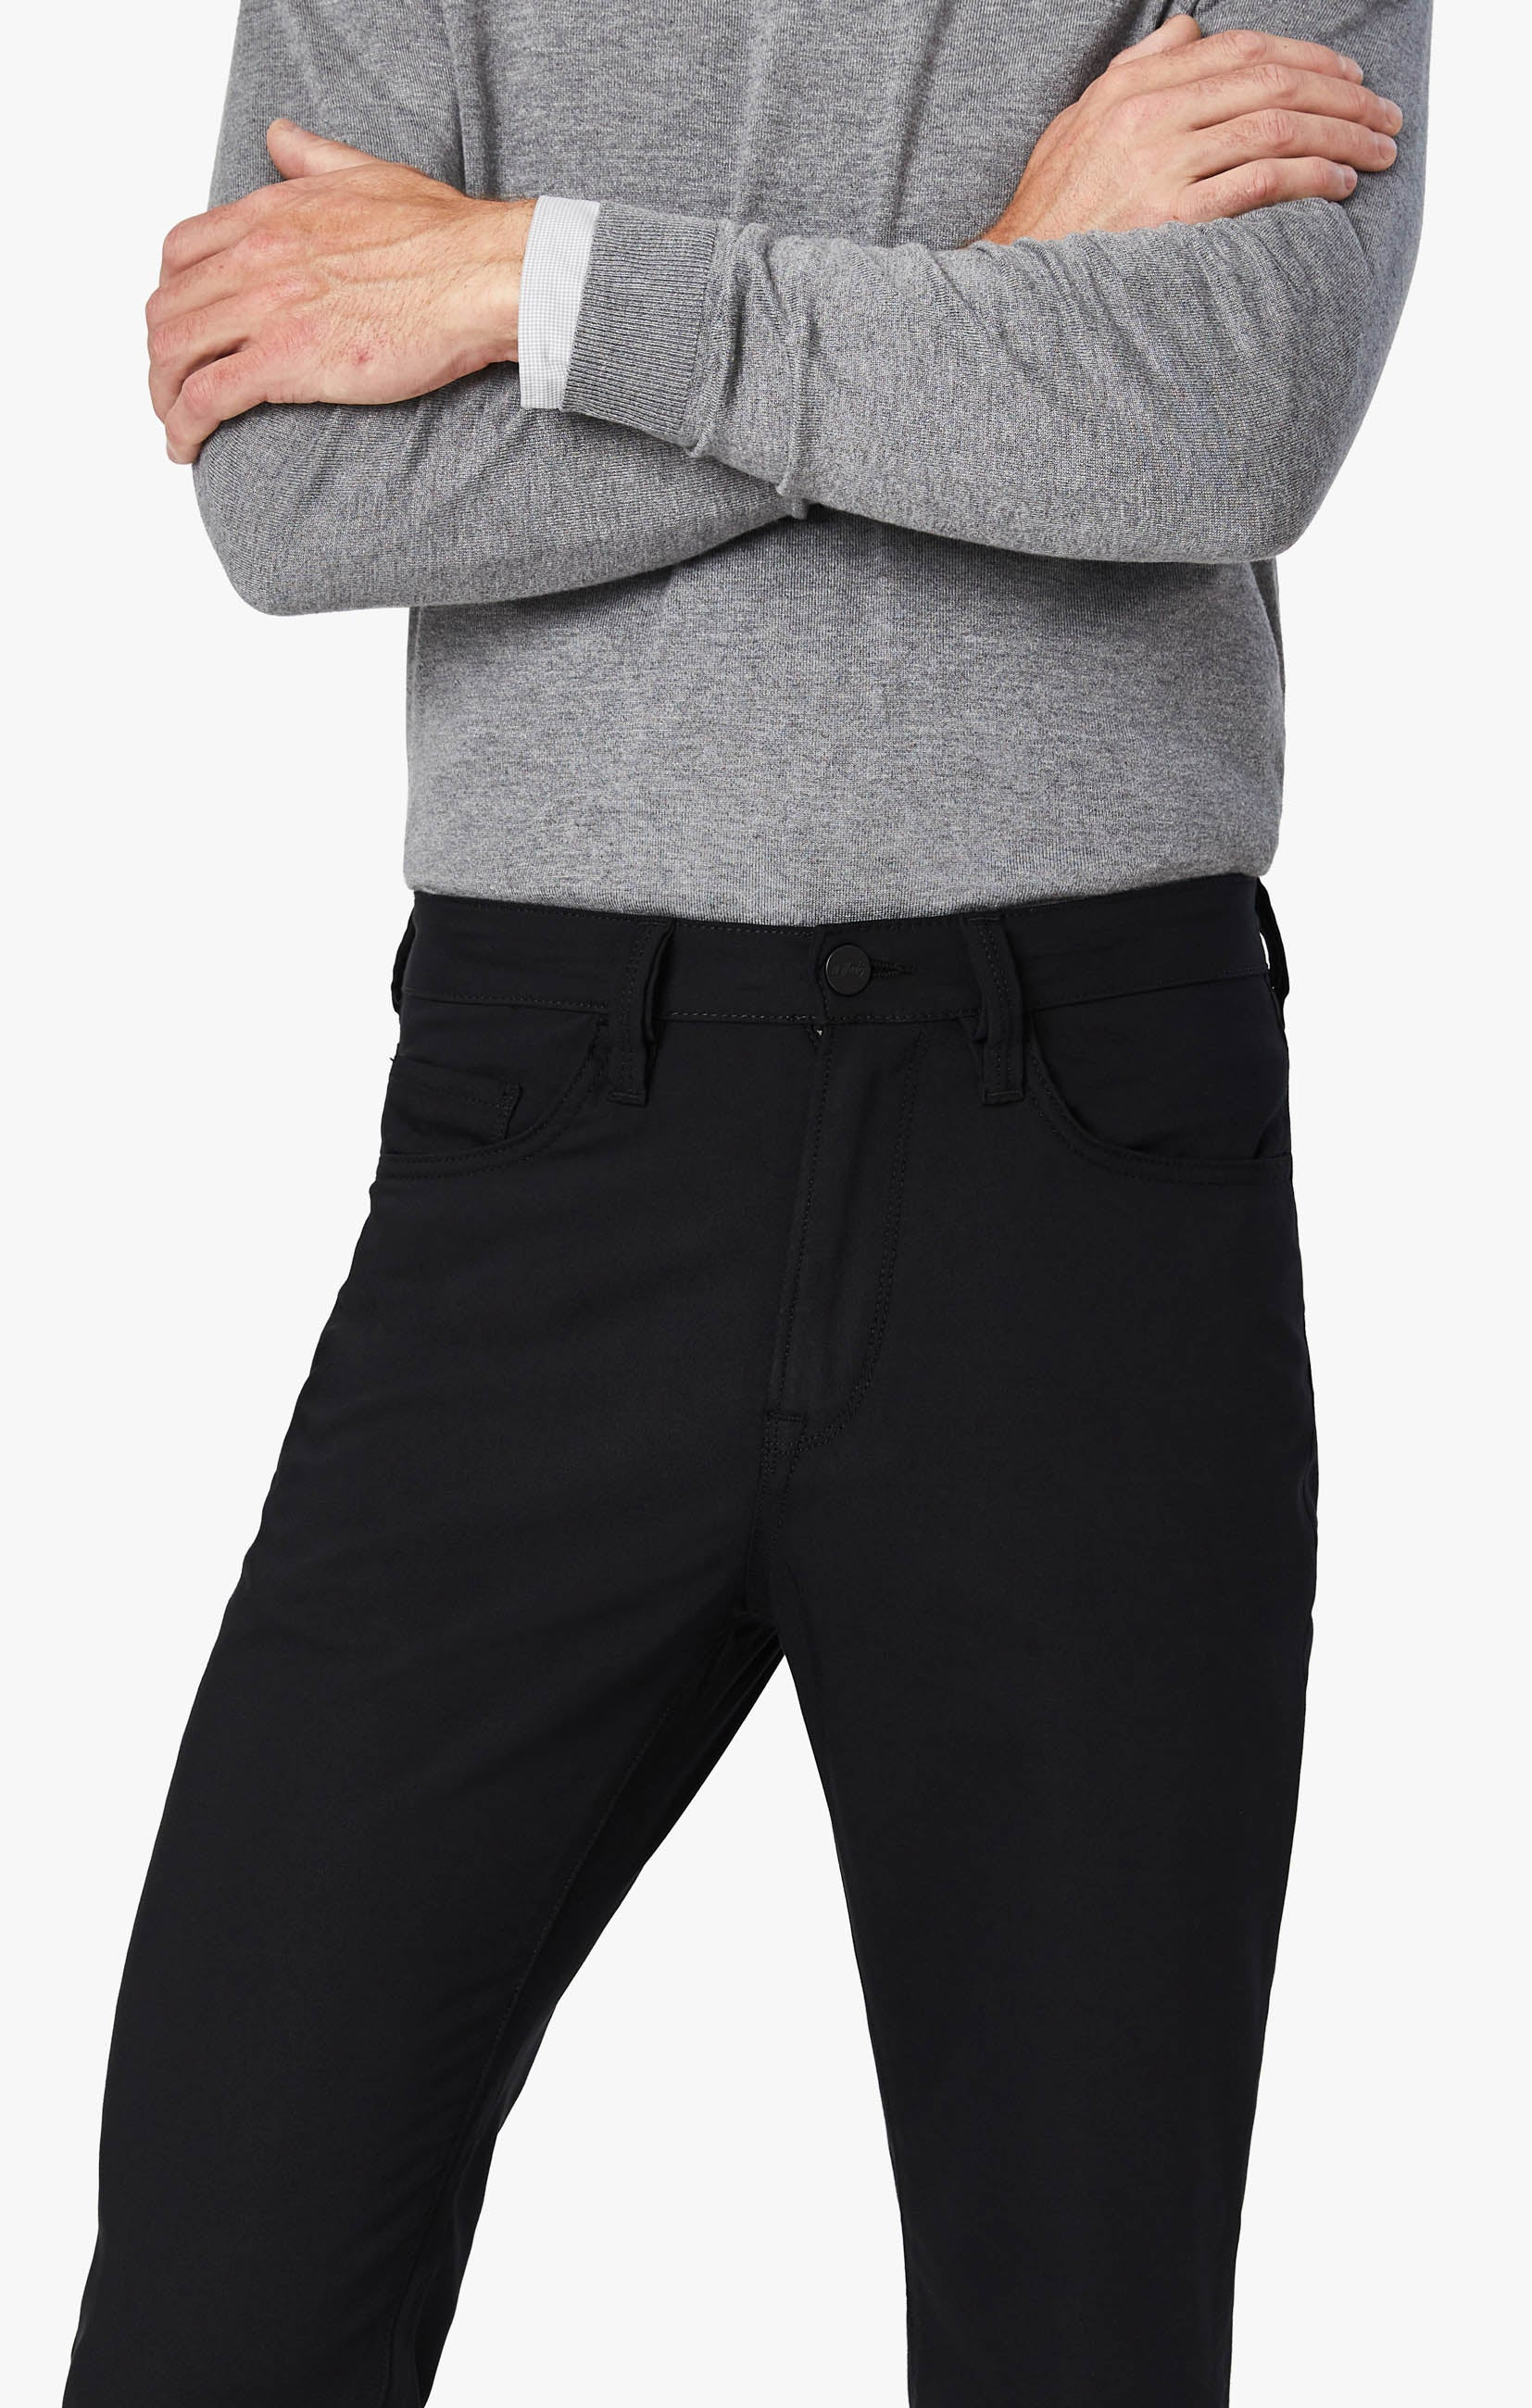 Charisma Relaxed Straight Commuter Pants In Onyx Image 7